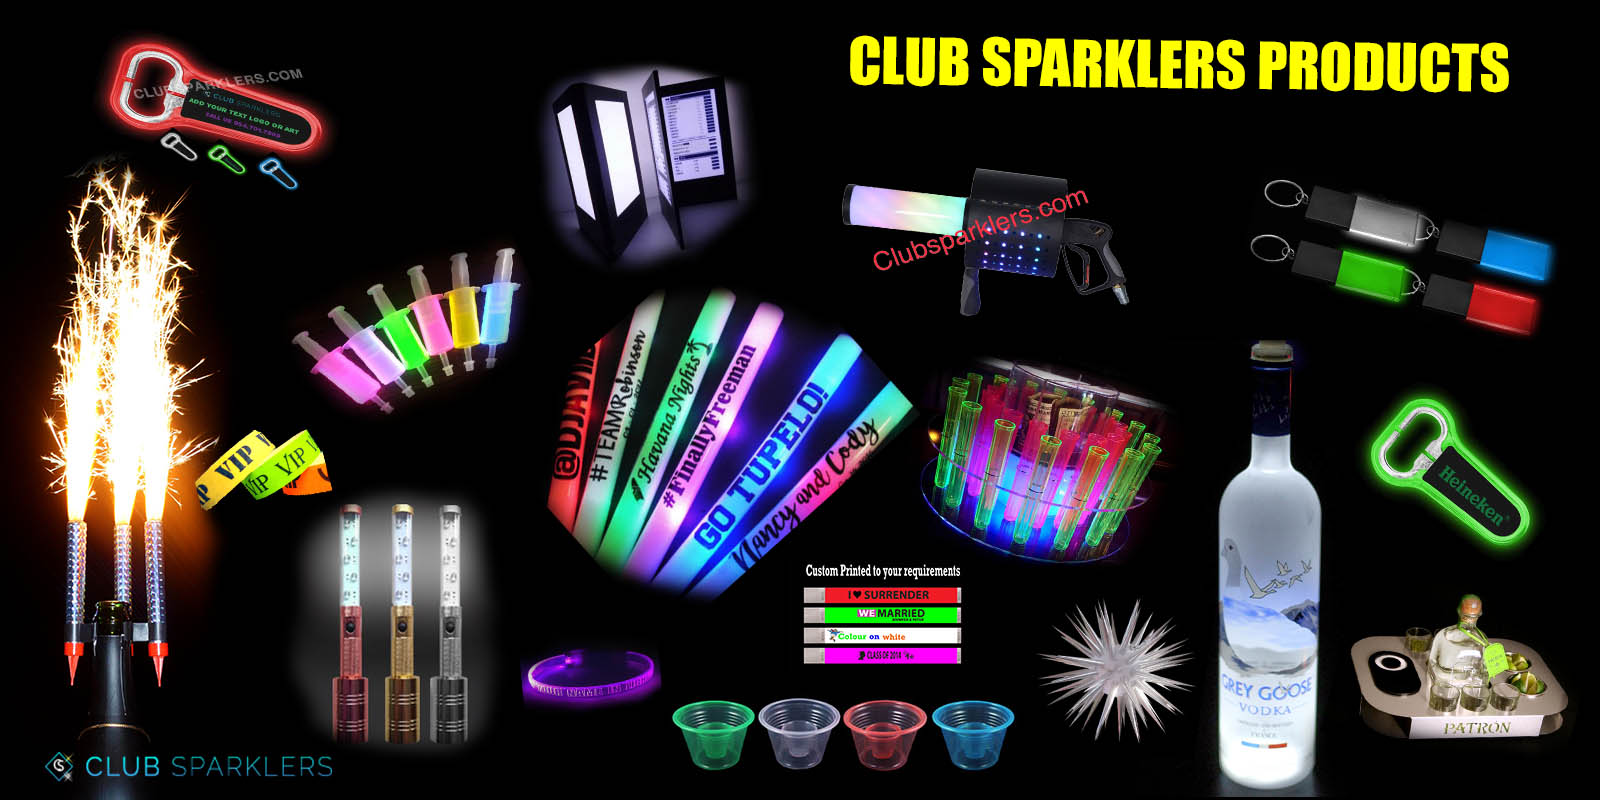 club-sparklers-products.jpg